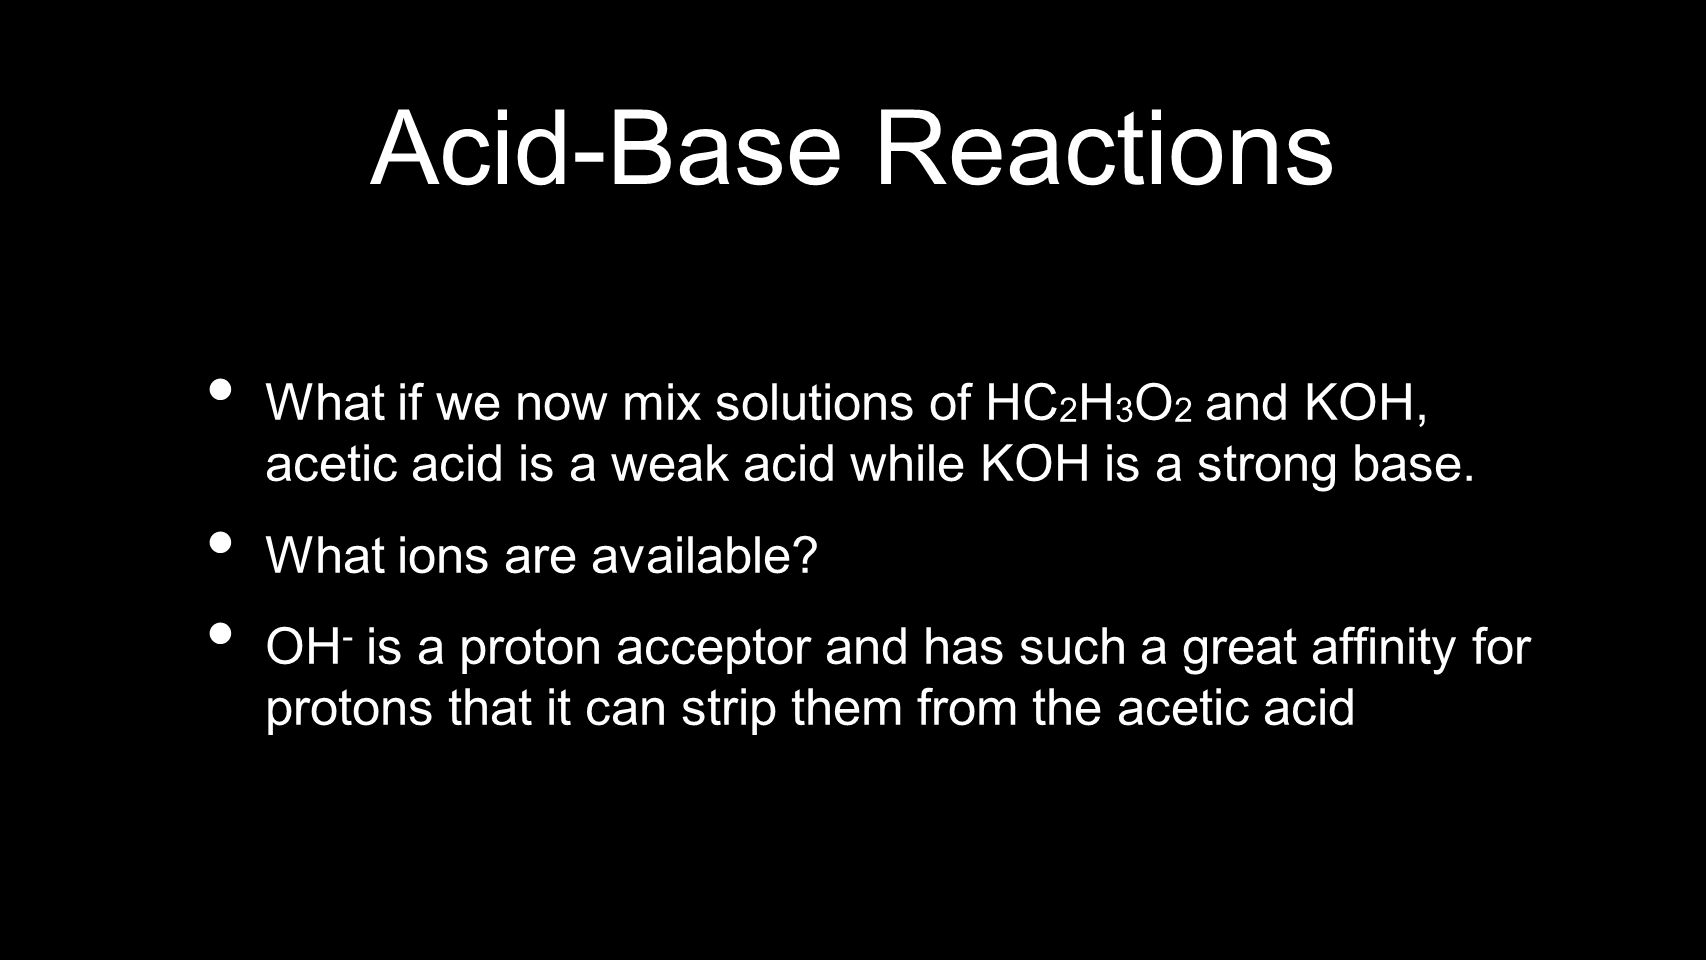 Acid-Base Reactions What if we now mix solutions of HC2H3O2 and KOH, acetic acid is a weak acid while KOH is a strong base.